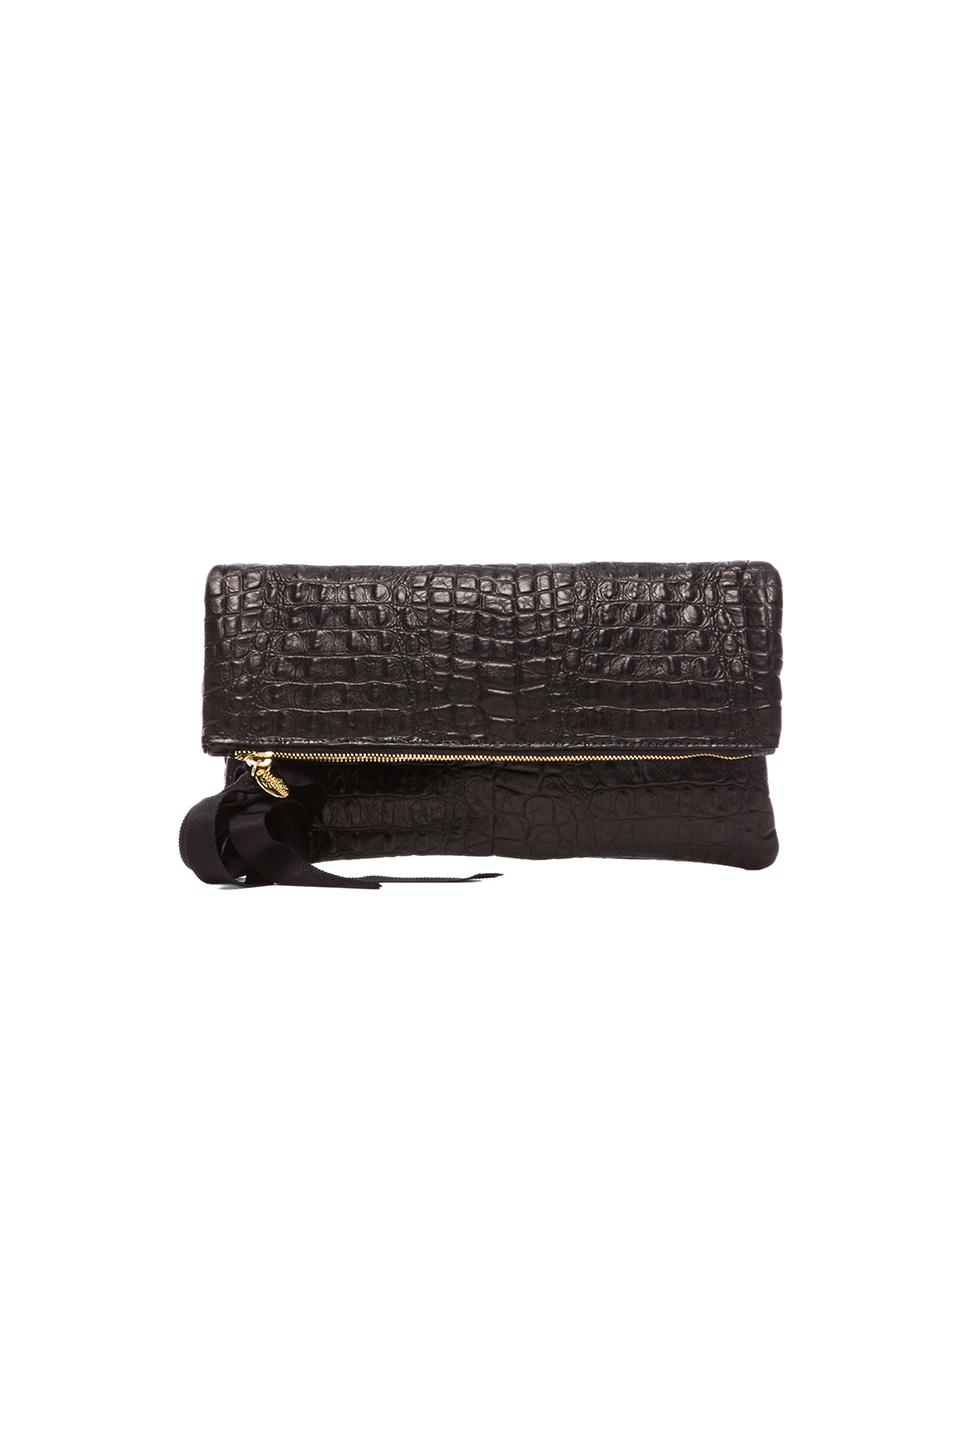 Clare V. Foldover Clutch in Black Croco